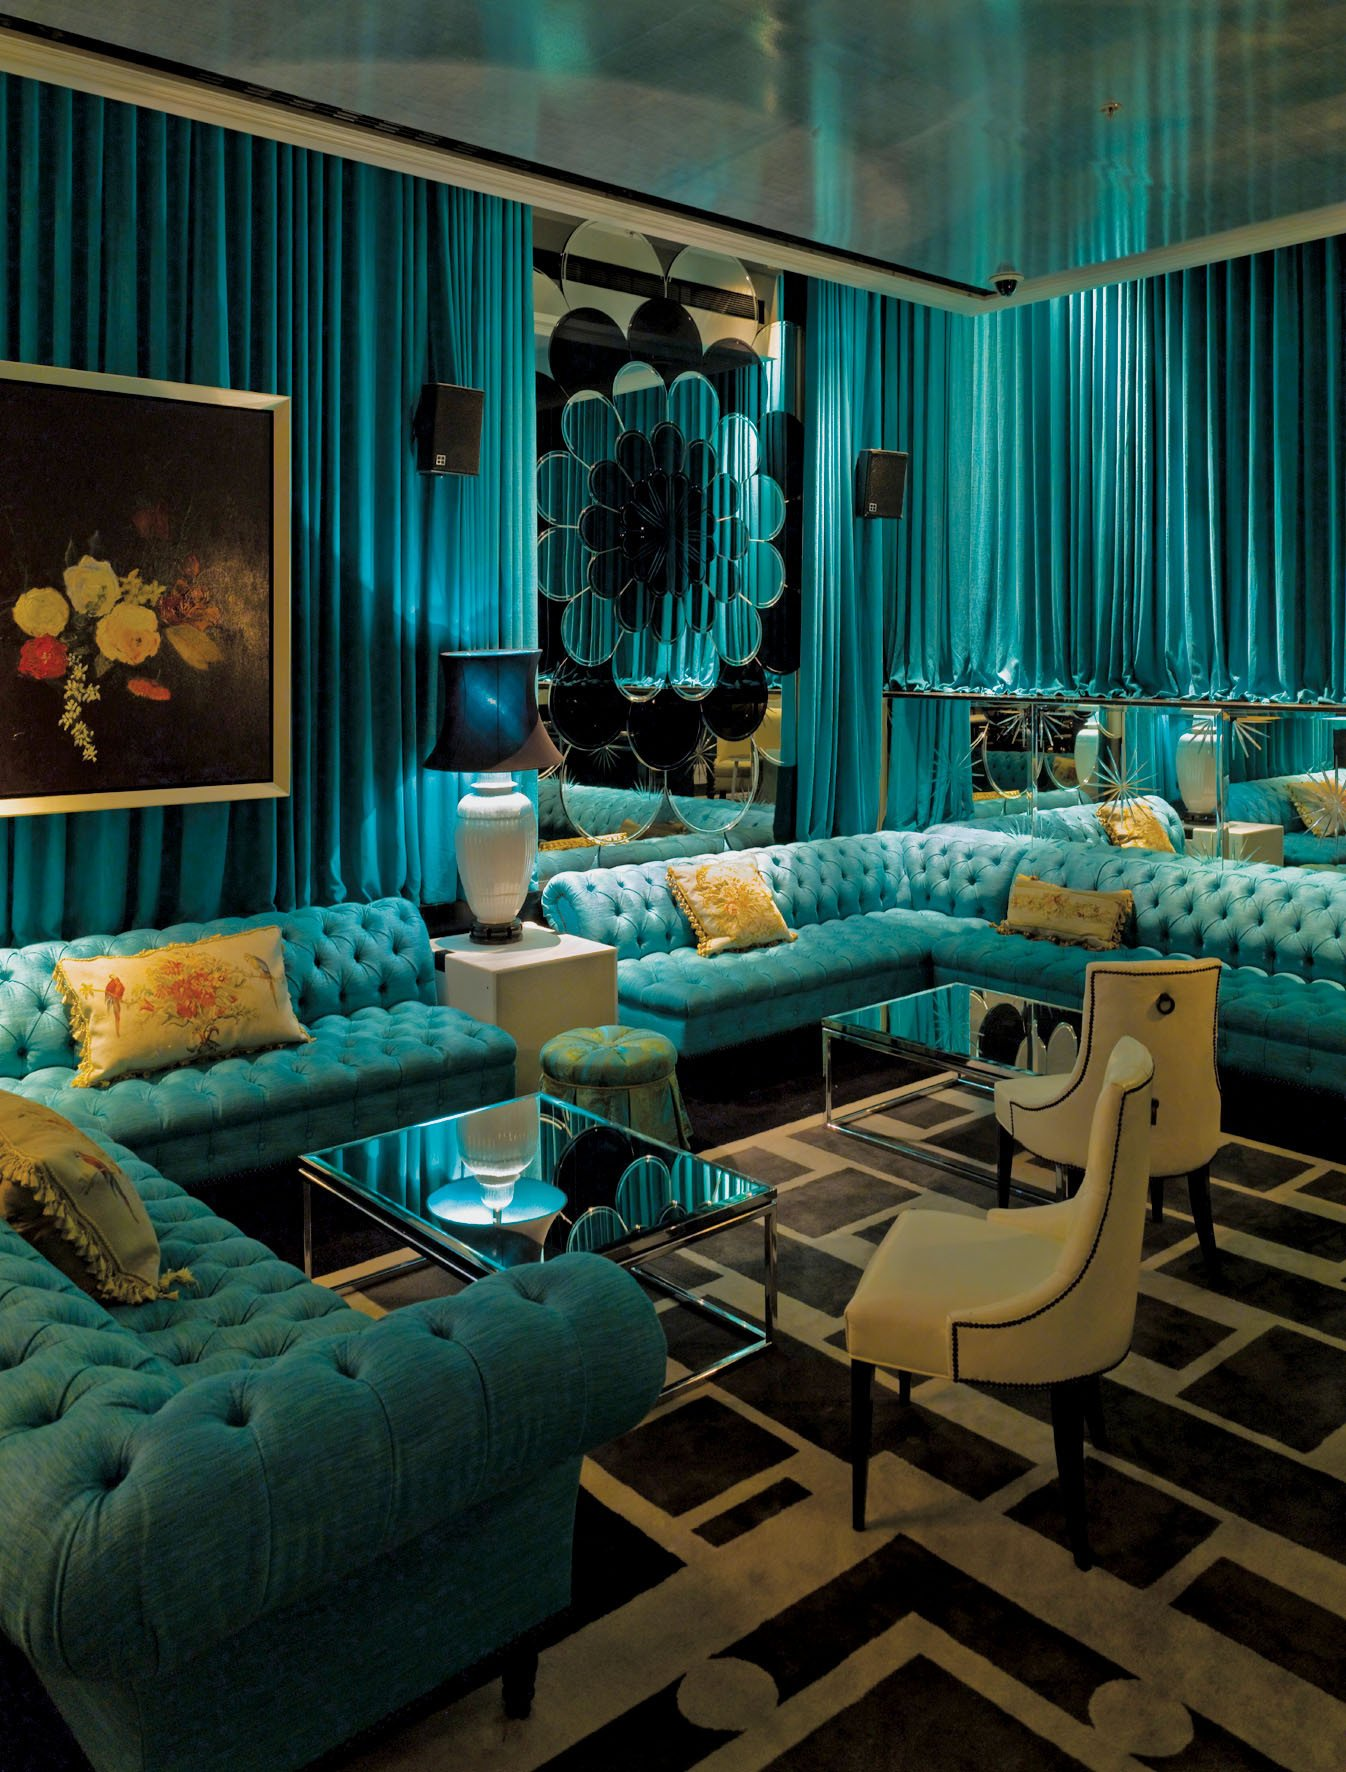 Contemporary Living Room Turquoise Elegant Modern Living Room Decorating Ideas for Contemporary Home Style Interior Design Inspirations